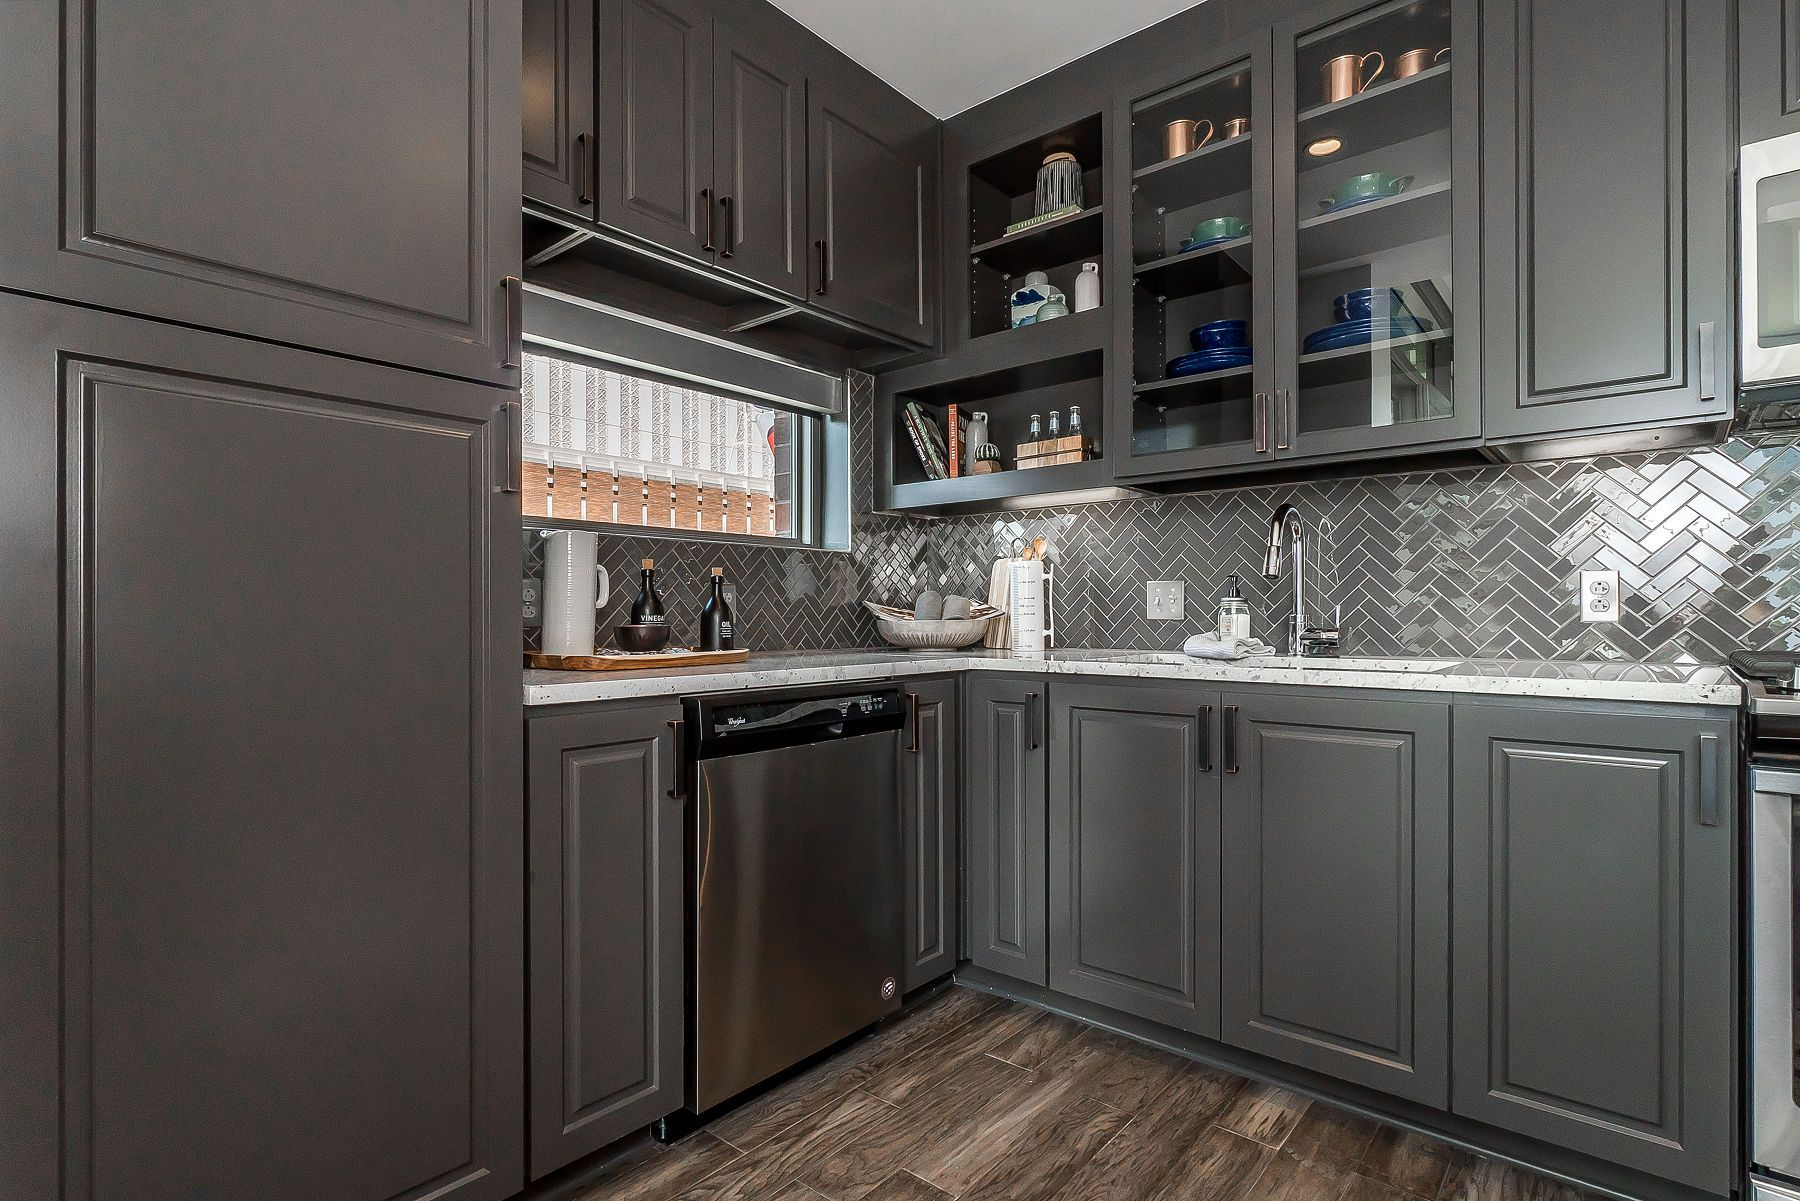 Leedo Kcma Certified Cabinets Cabinets To Go Kitchen Cabinets Grey Cabinets